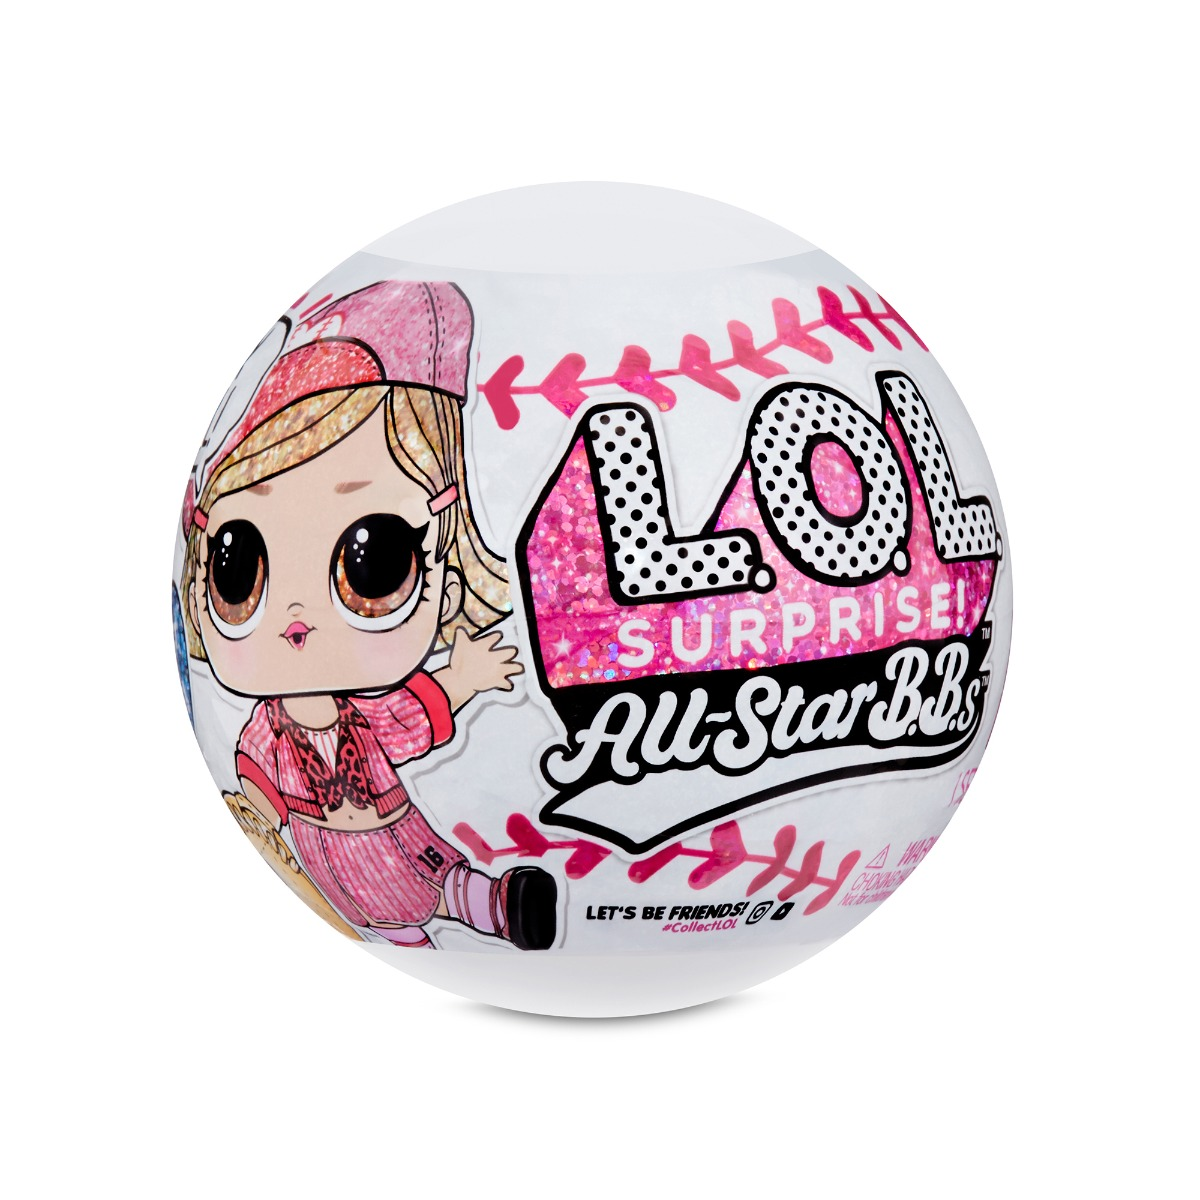 Papusa LOL Surprise All Star B.B.s, Baseball, 8 Surprize, S1, Pink